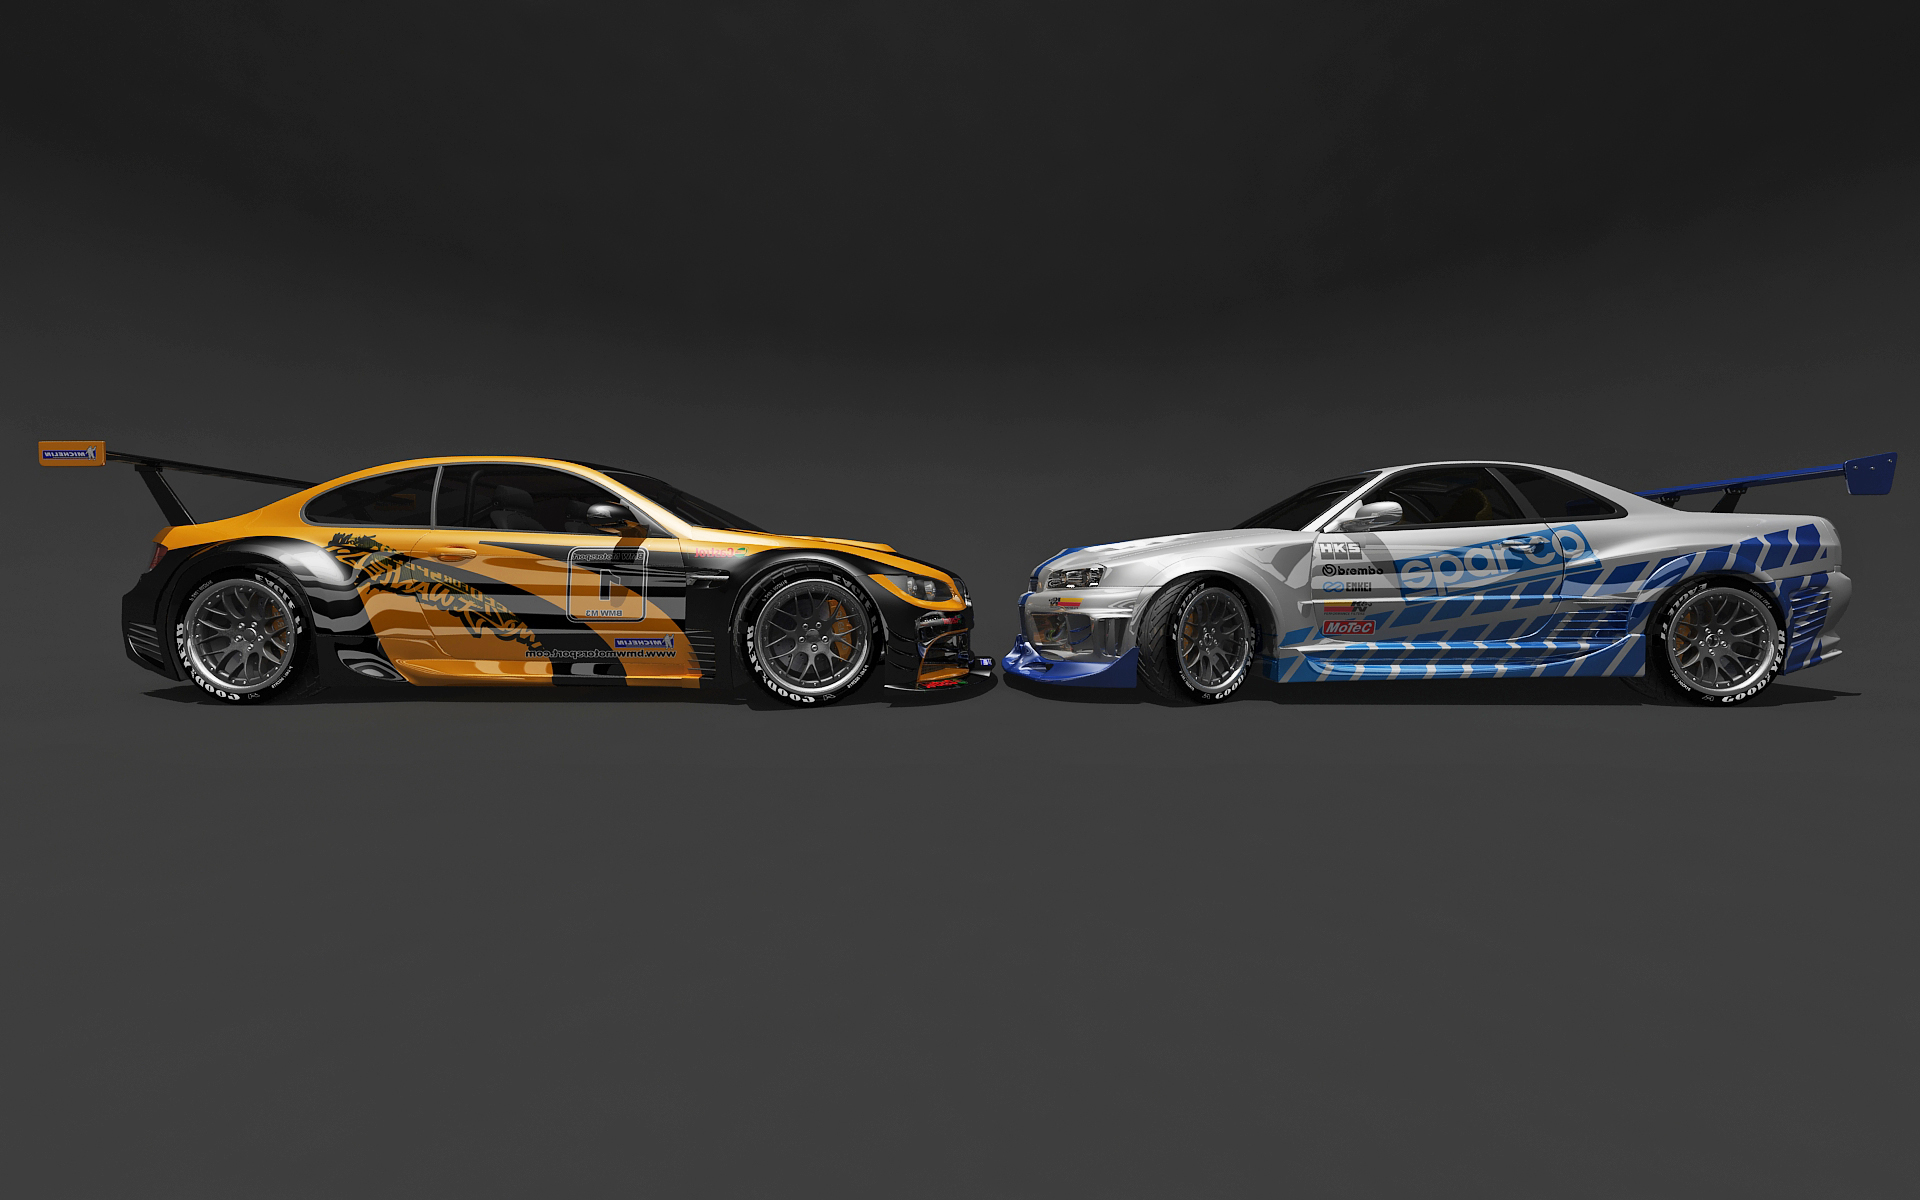 BMW and Nissan head to head by stefanmarius